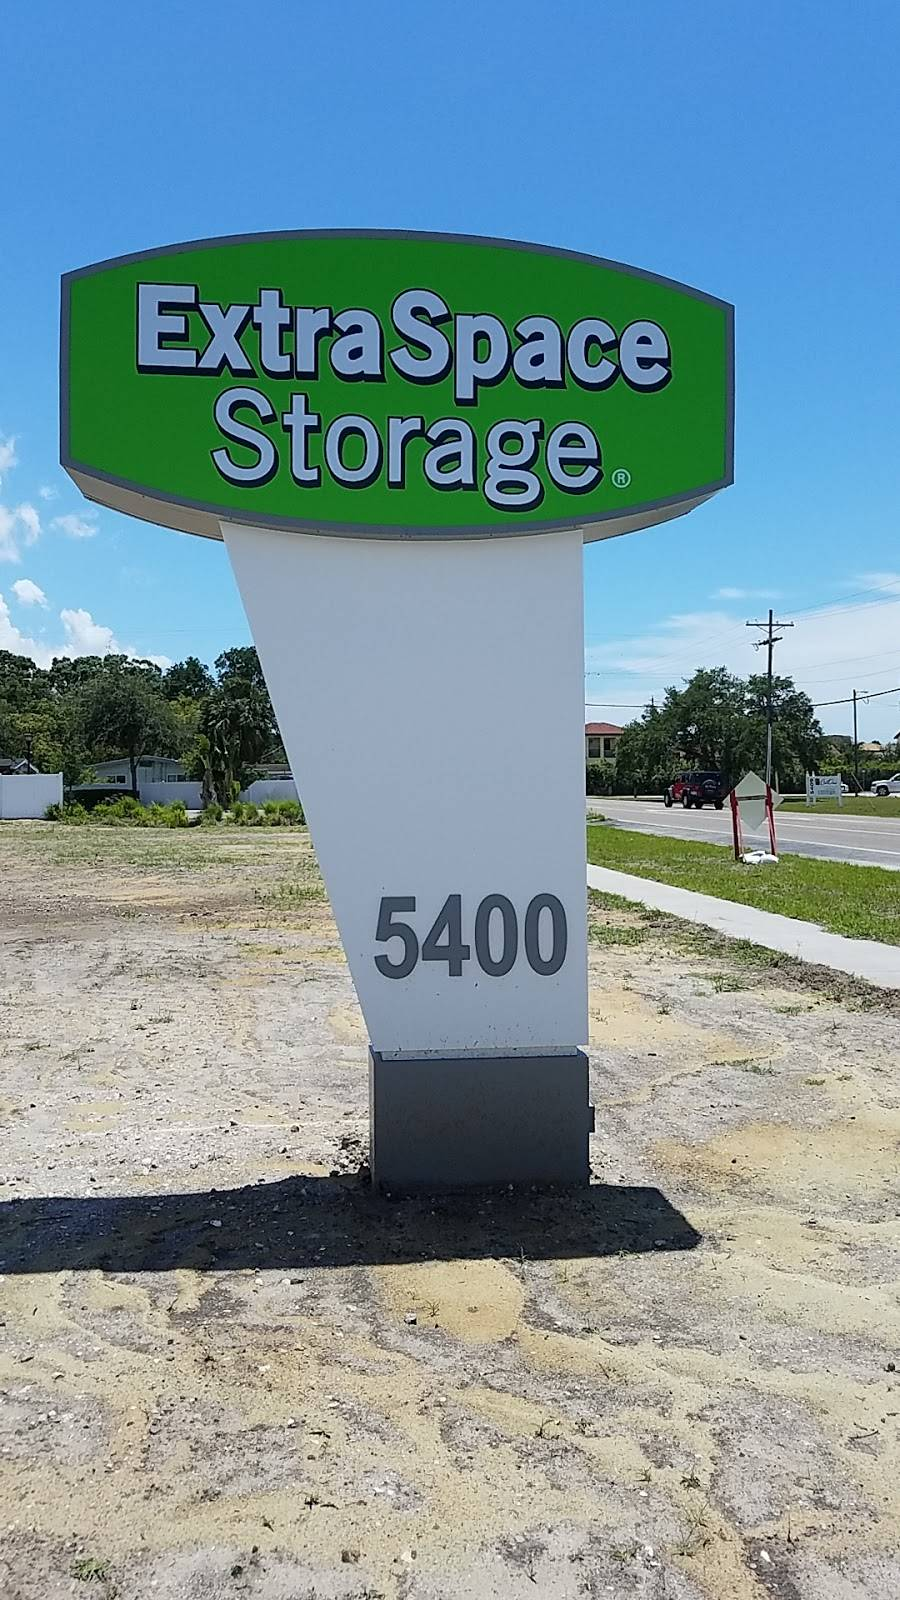 Extra Space Storage - moving company  | Photo 6 of 10 | Address: 5400 S West Shore Blvd, Tampa, FL 33611, USA | Phone: (813) 534-4475